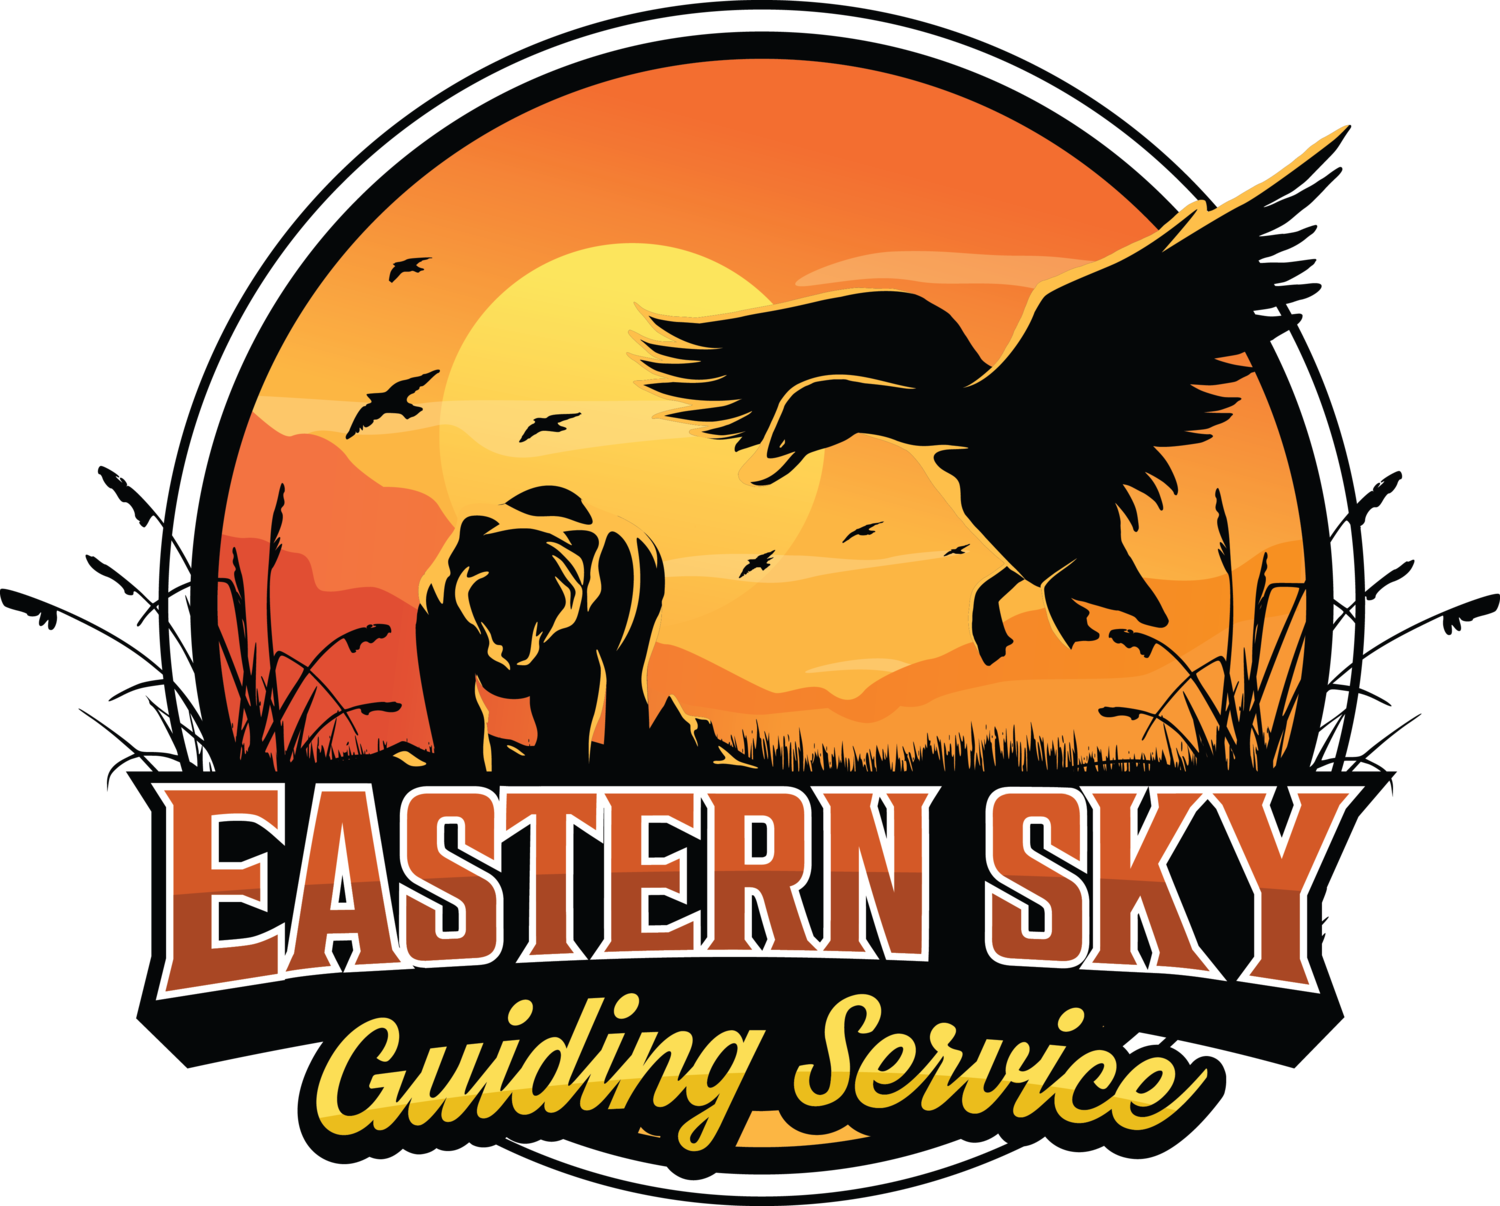 Eastern Sky Guiding Services